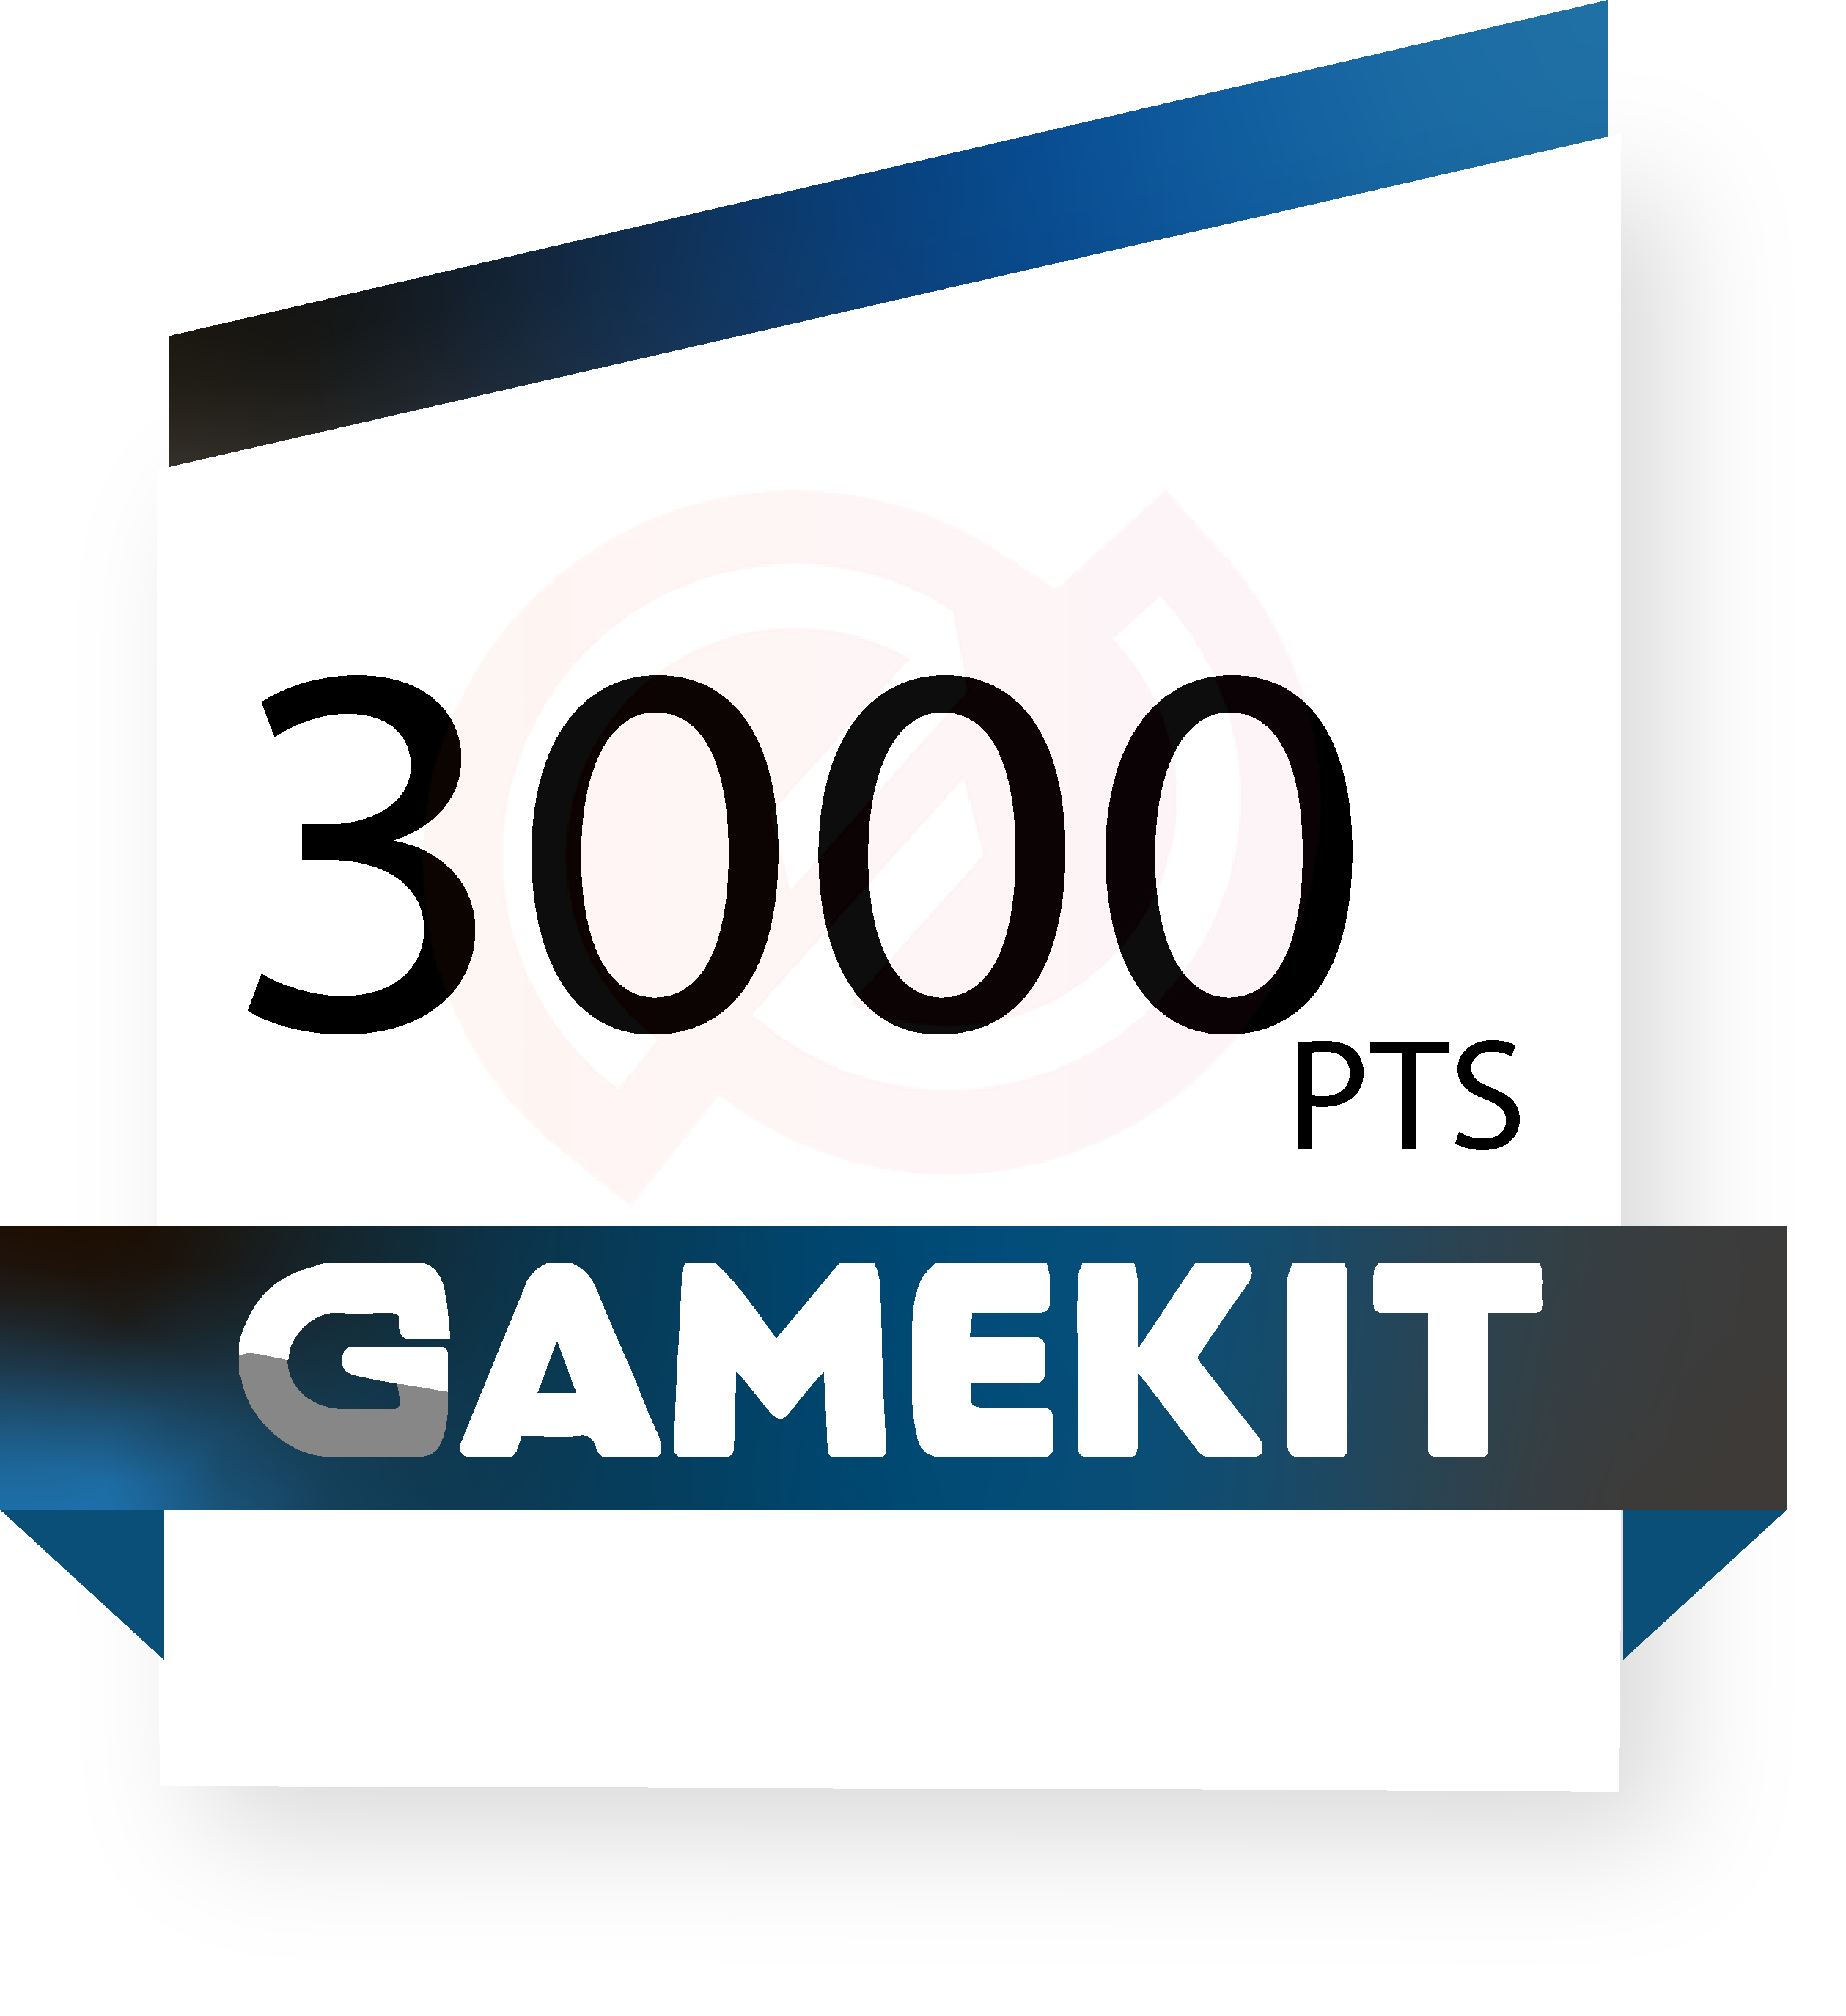 gamekit-3000-points